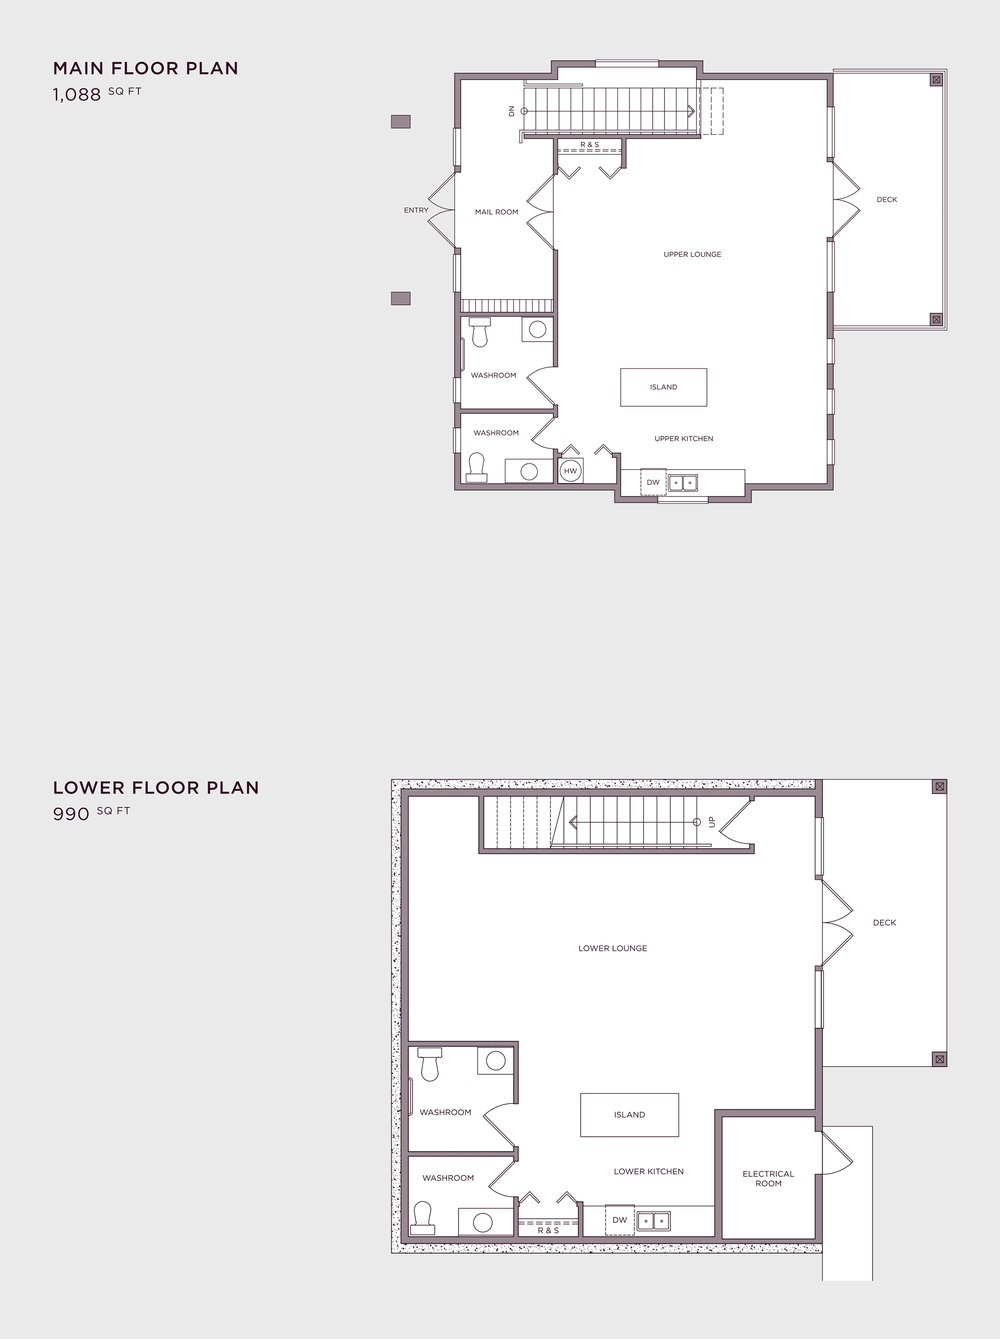 Imperial Townhome's Amenity Building - The Drawing Room